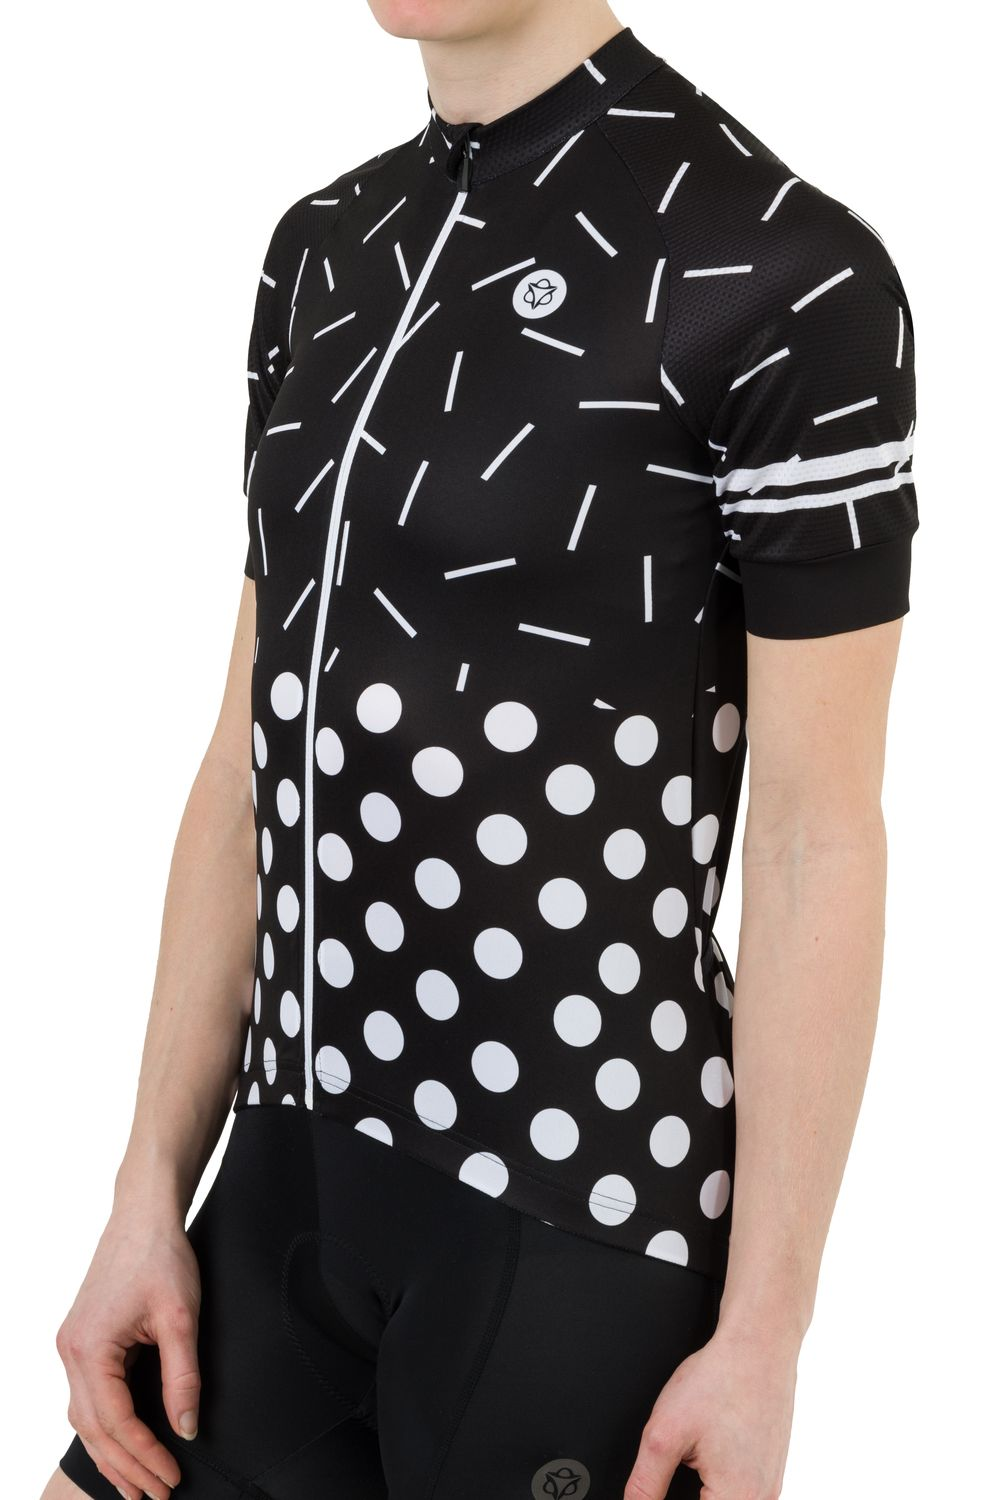 Sprinkle Dot Jersey SS Essential Women fit example